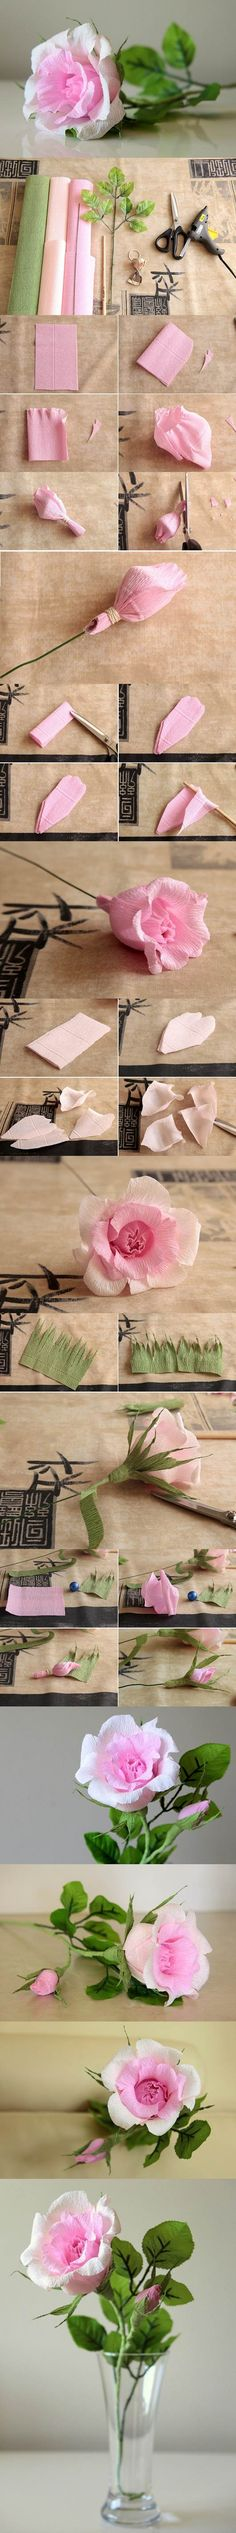 DIY Beautiful Pink Crepe Paper Rose